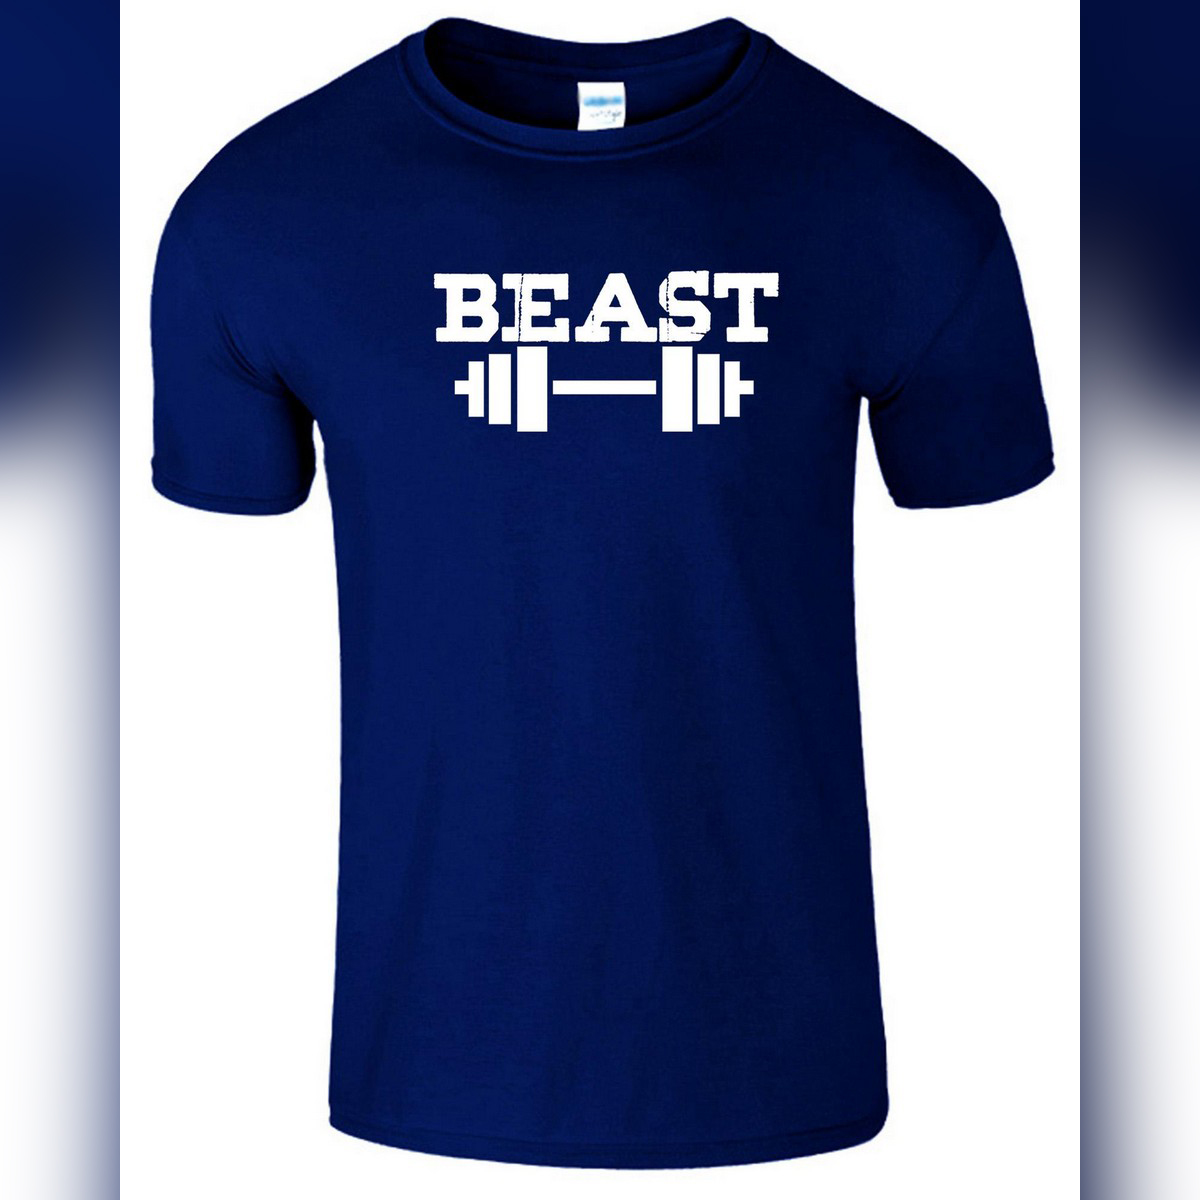 Navy Blue Cotton Tshirt Printed Beast Fitness Dumbbell Gym Workout T shirt